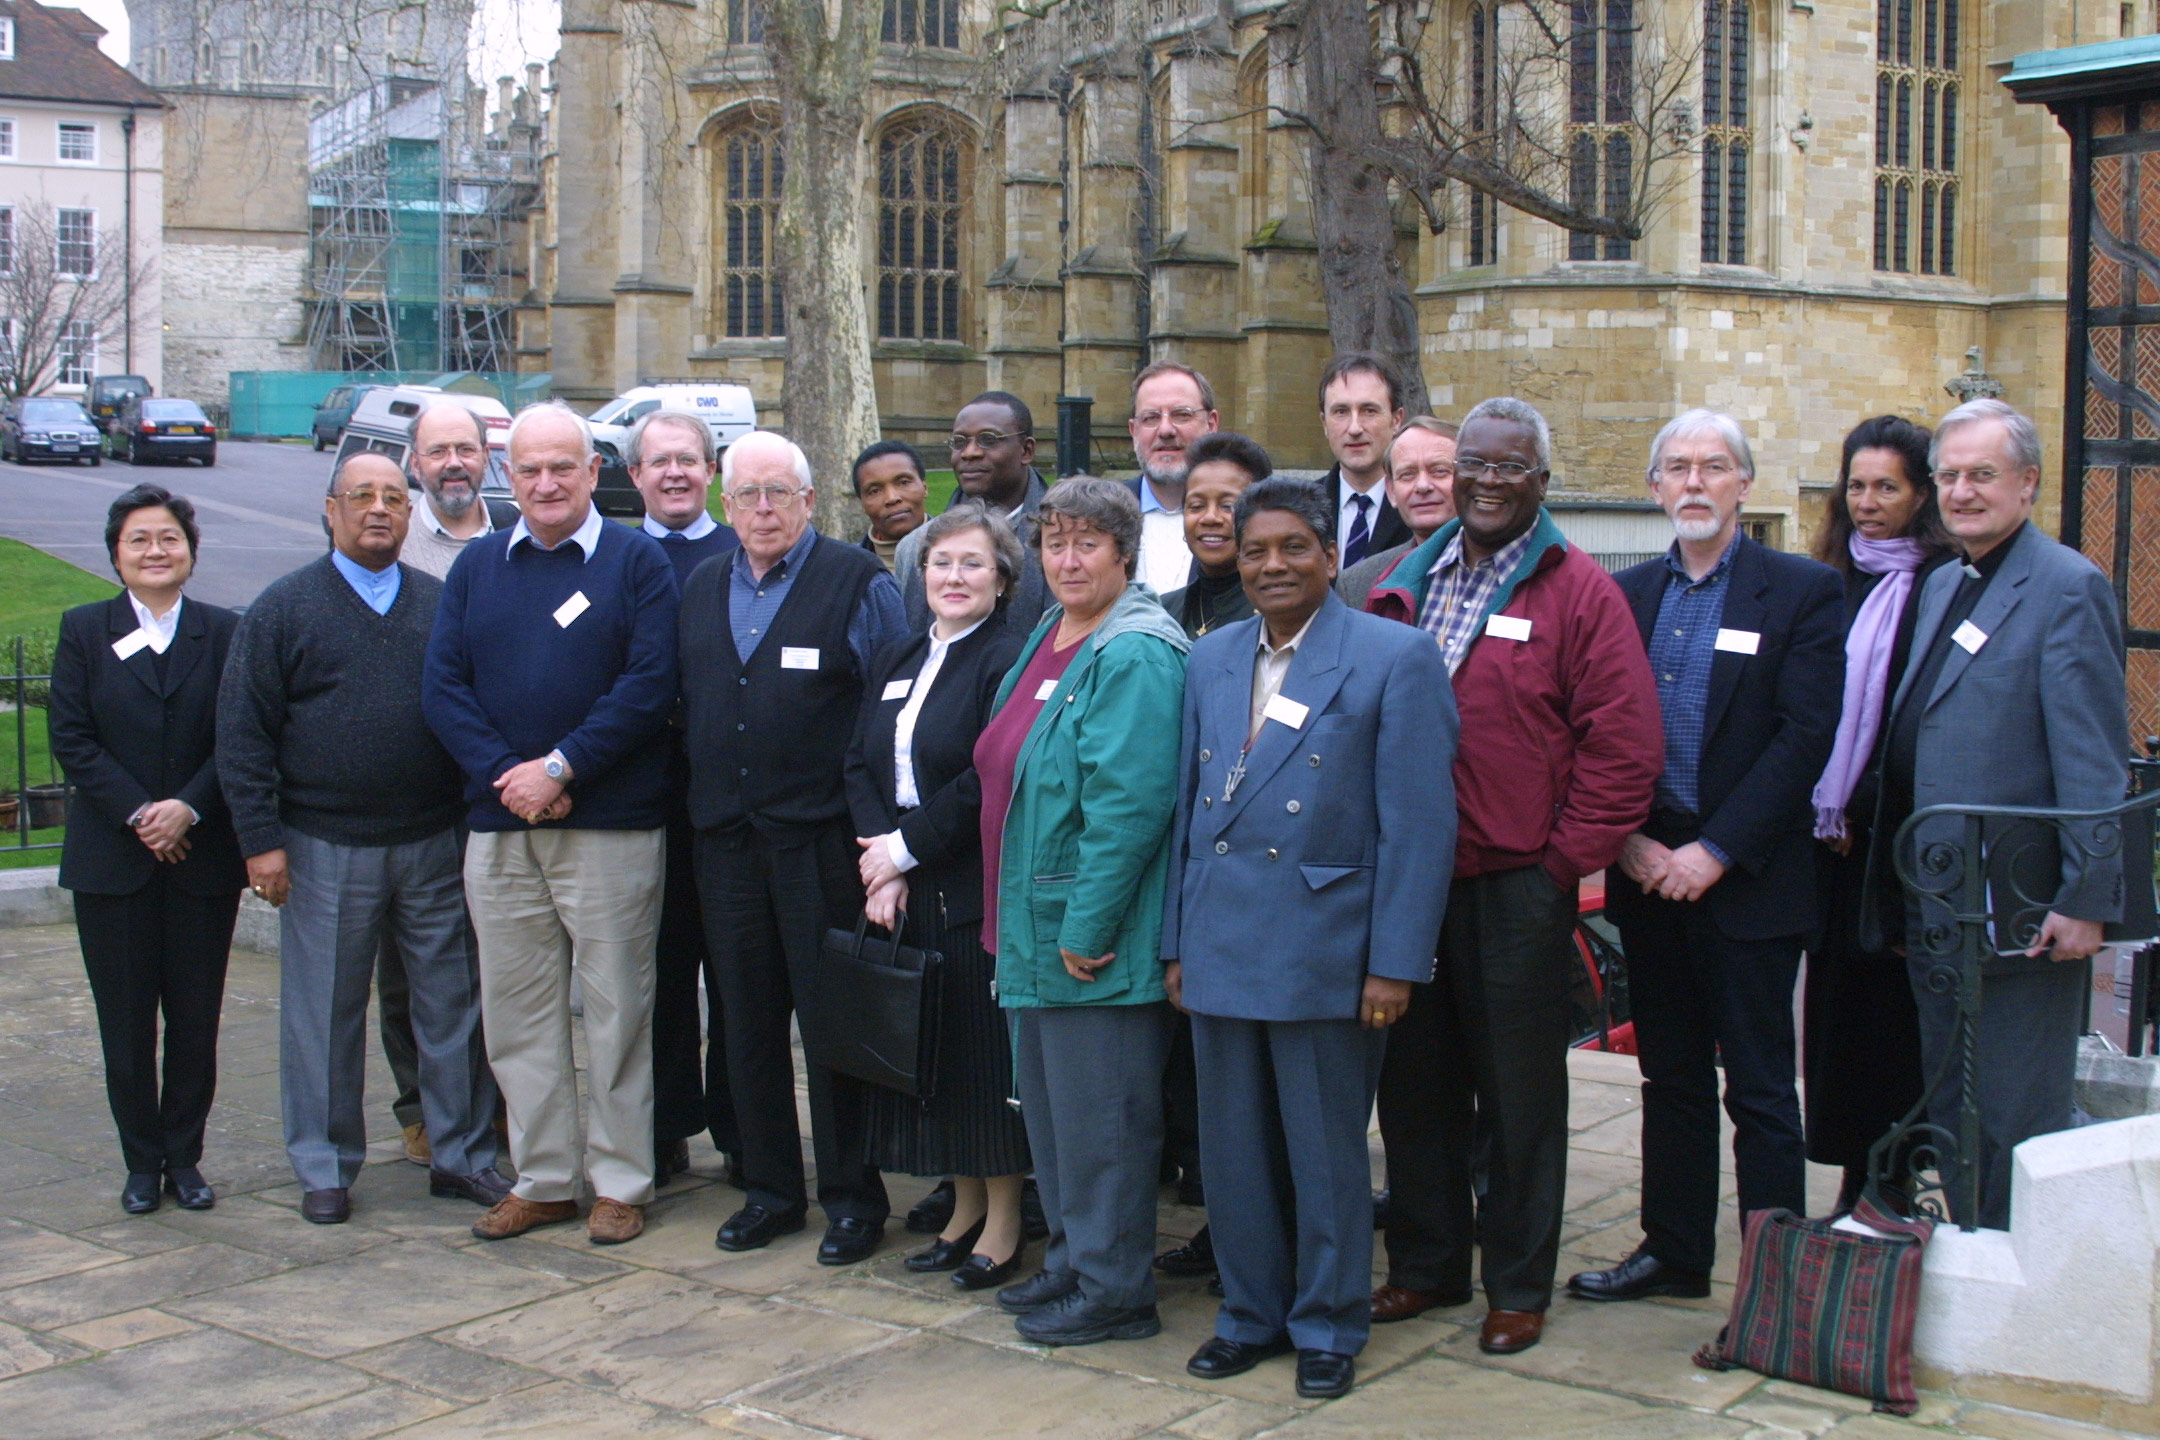 The Lambeth Commission outside St George's House, Windsor